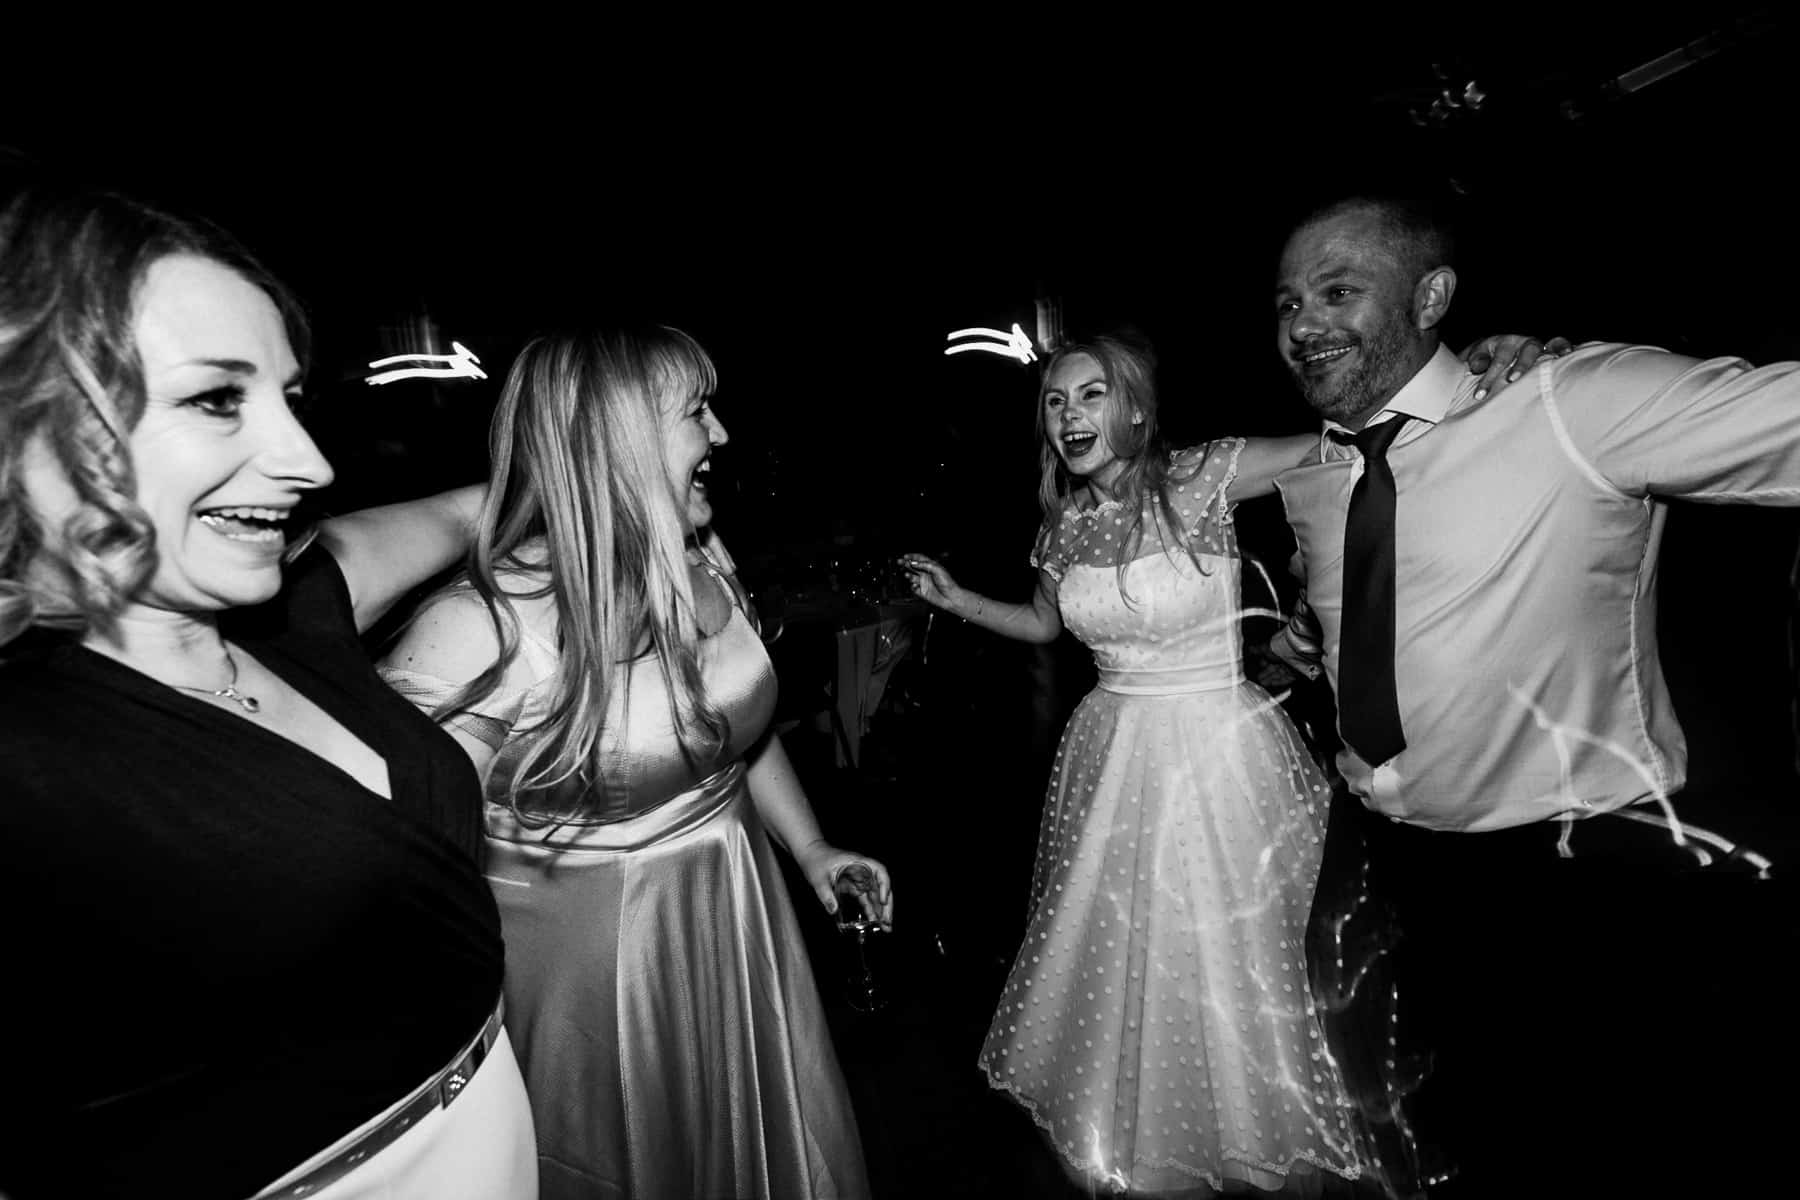 friends dancing with the bride and groom